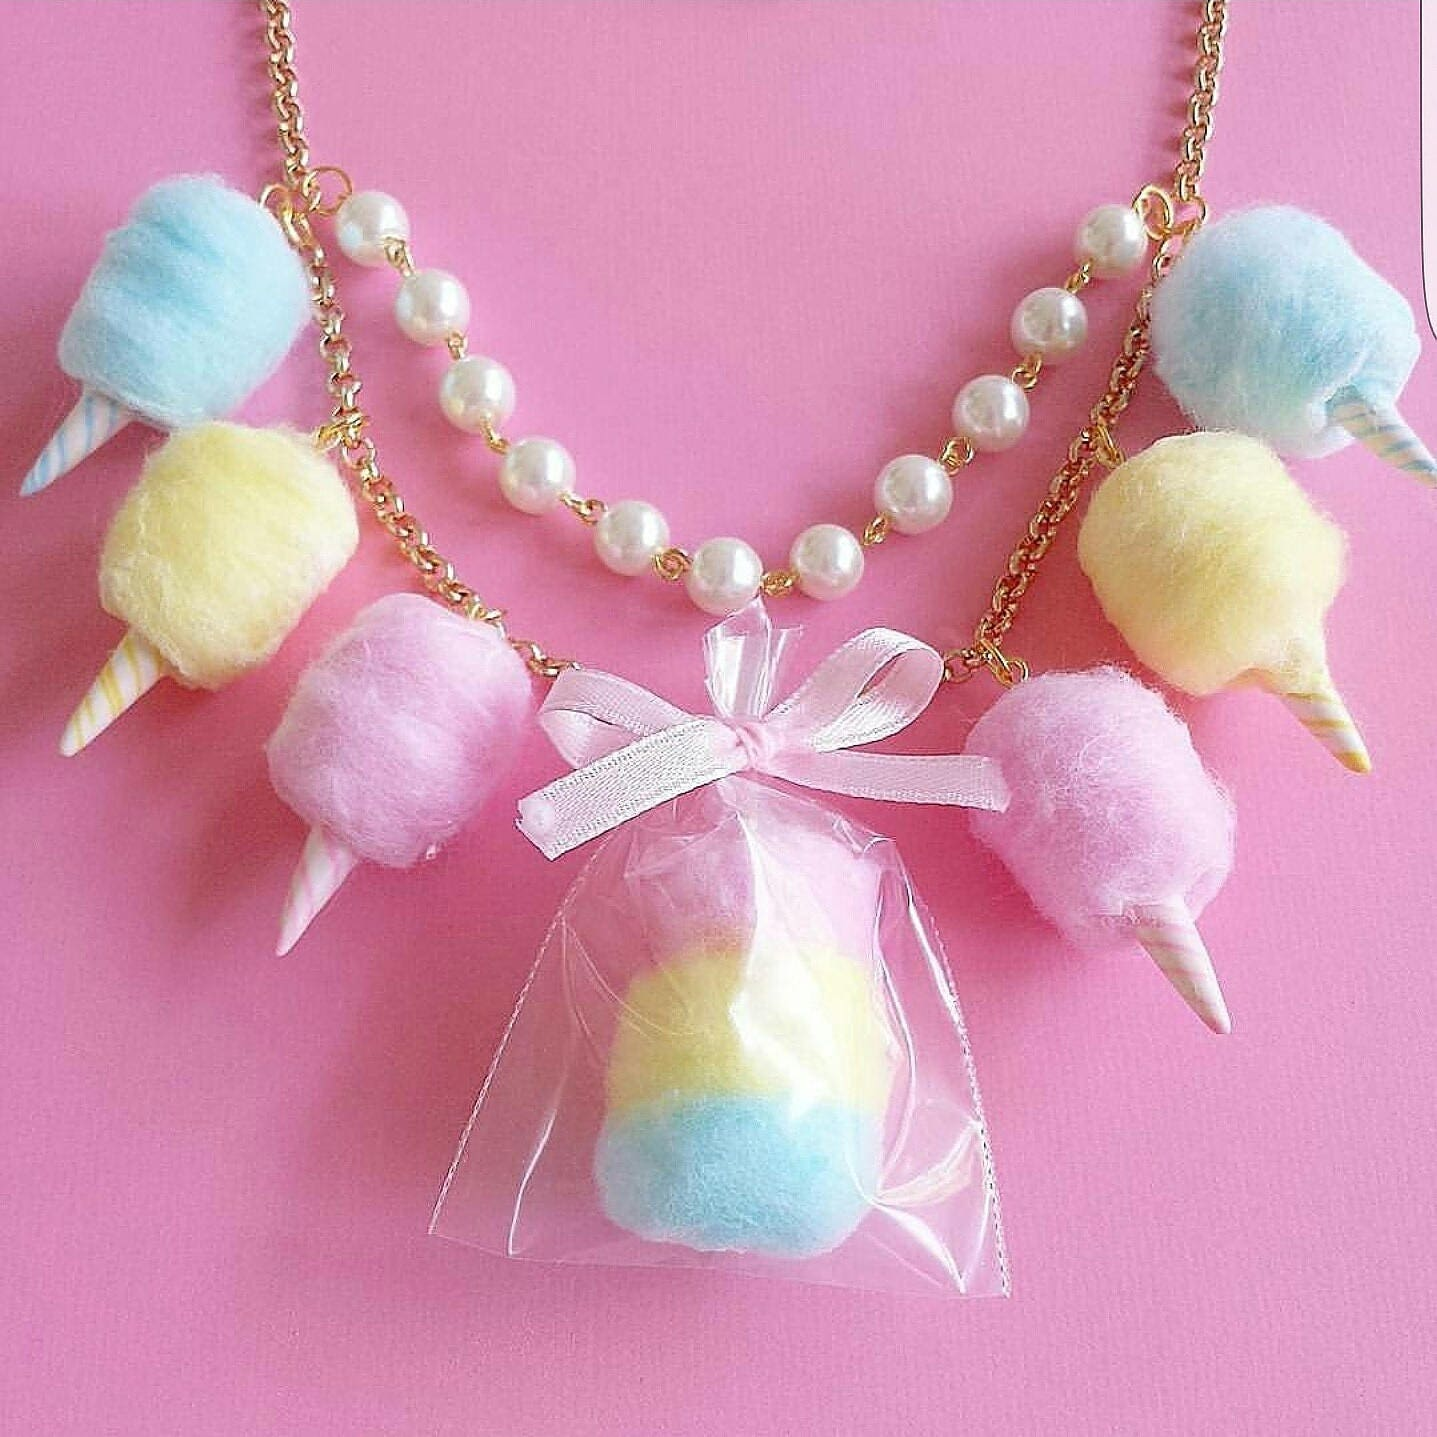 Cotton Candy Necklace Carnival Cotton Candy Statement Necklace